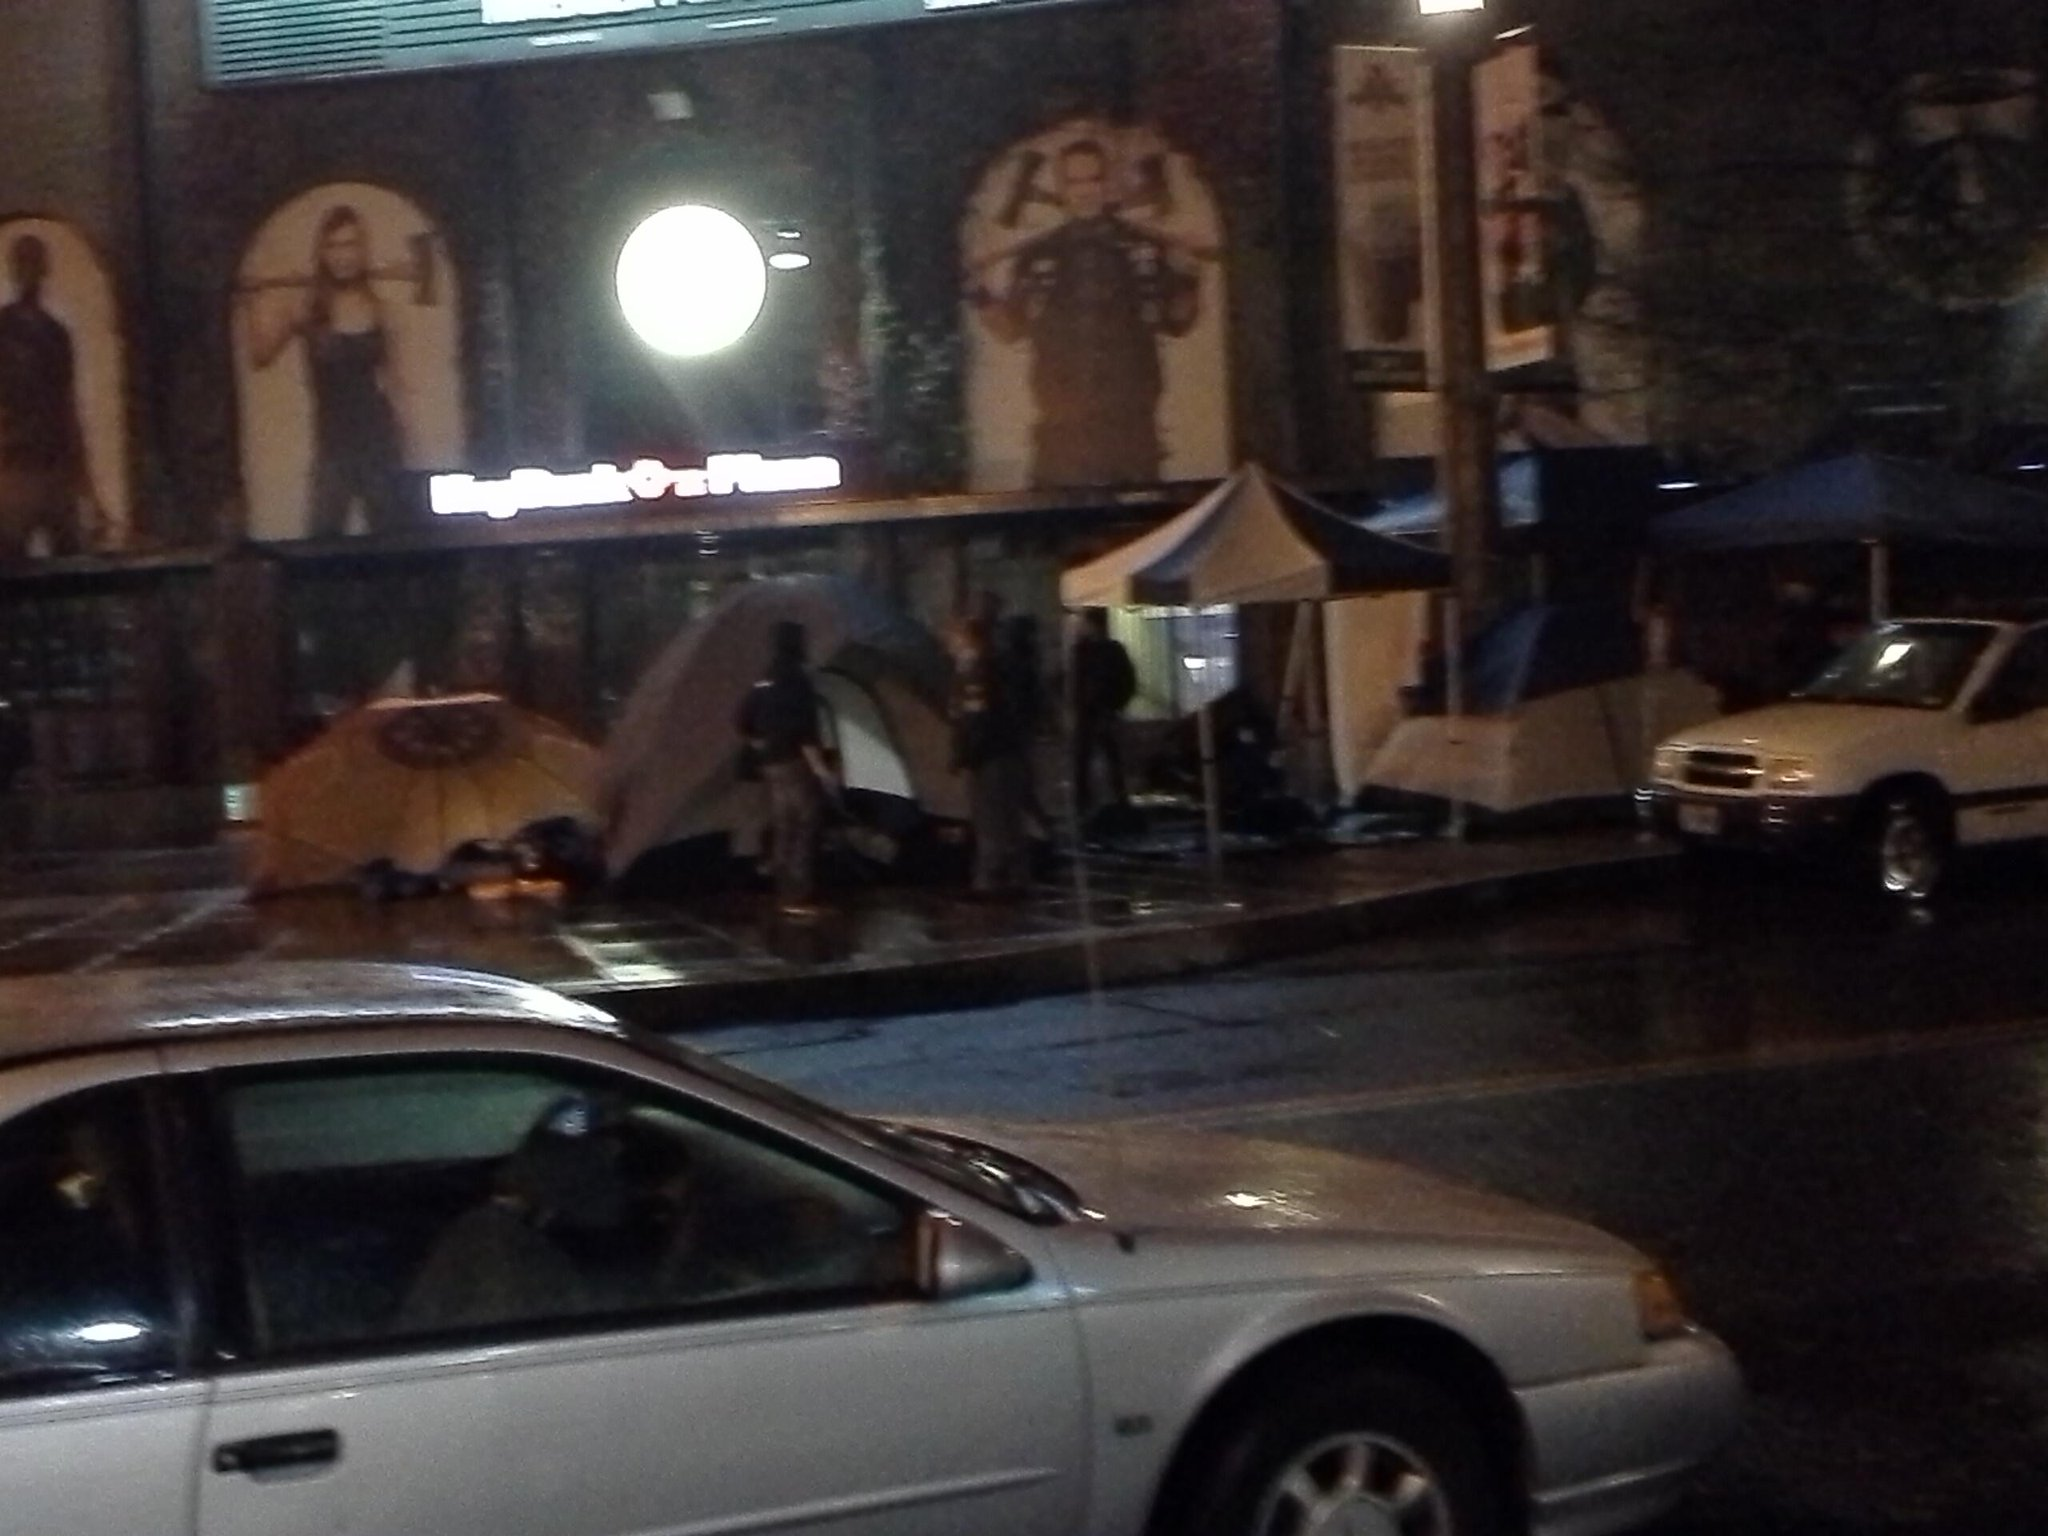 22 hours before kick off, fans were camping outside the stadium for the Timbers v Sounders match